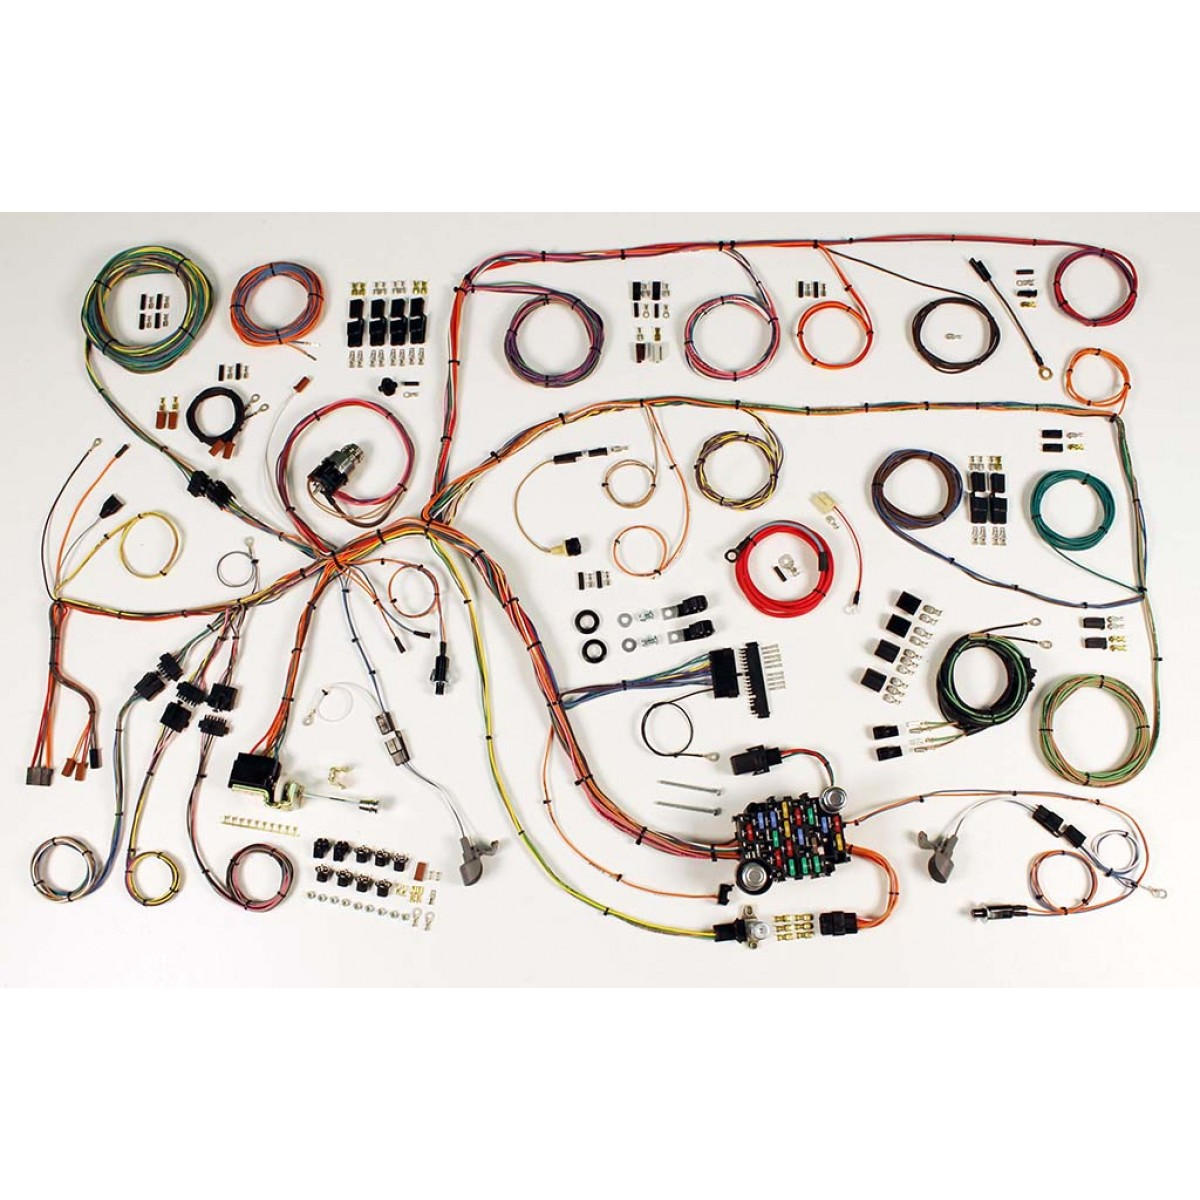 510379 complete wiring harness kit 1960 1964 ford falcon 1960 1965 mercury comet part 510379 1960 1964 ford falcon complete wiring harness kit 1960 1964 ford complete wiring harness at panicattacktreatment.co